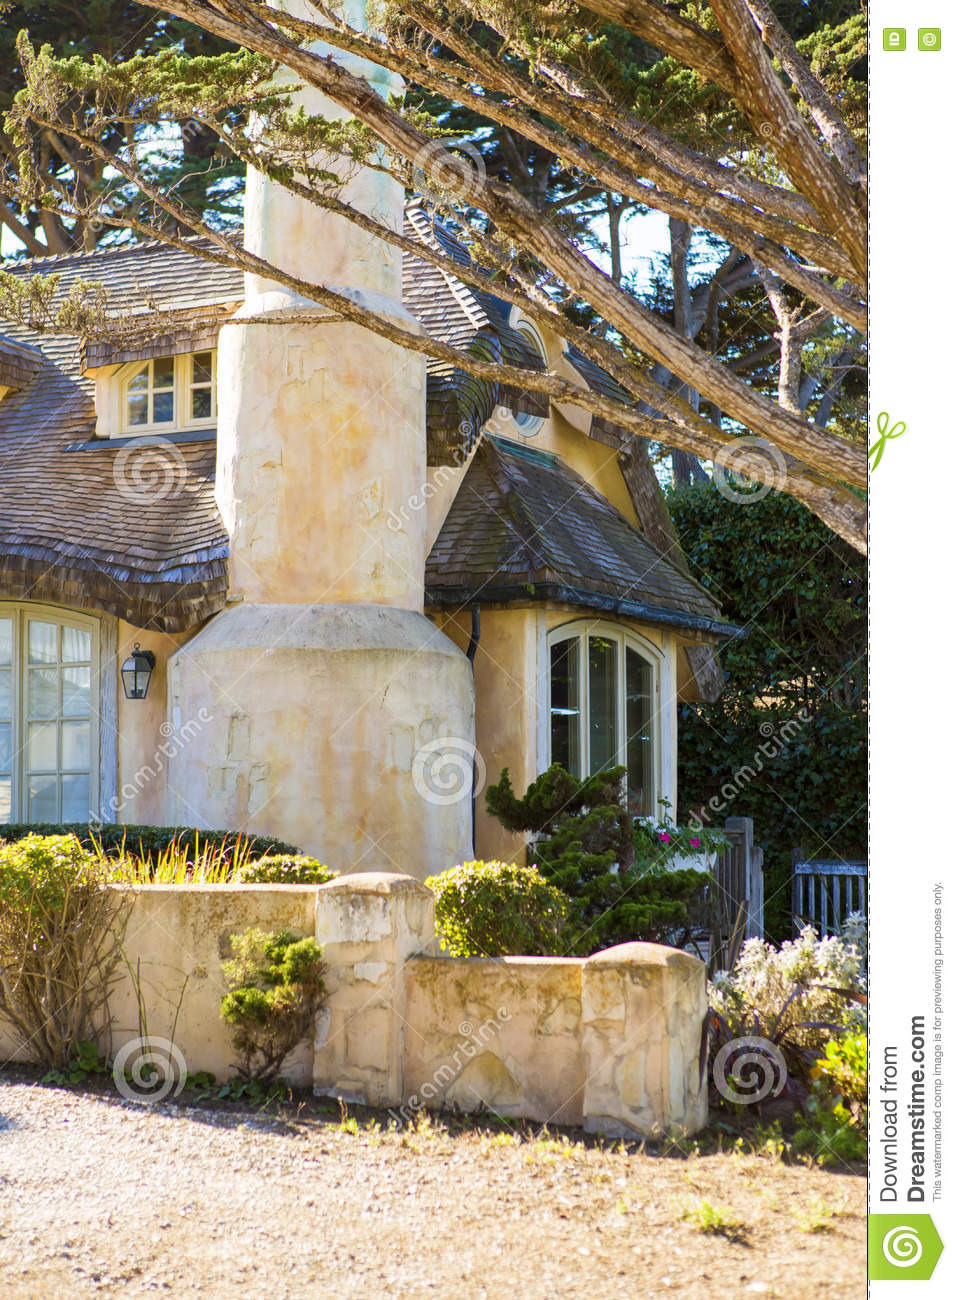 House with Big Windows New View the Big Stone House with Windows Stock Image